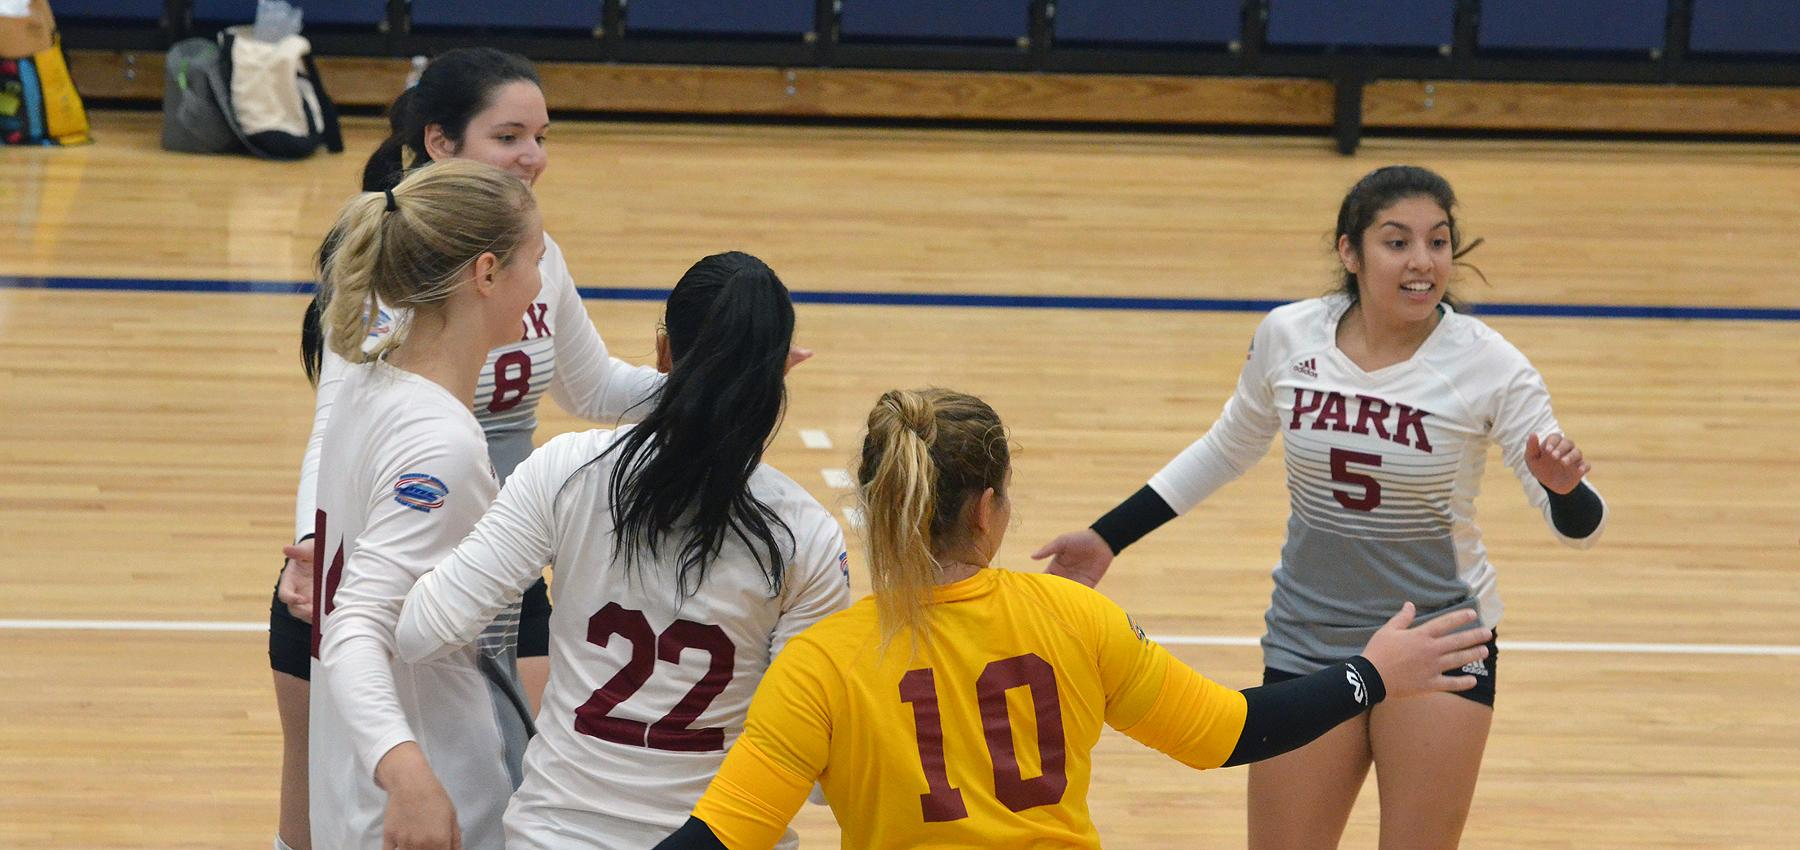 Park got out of Columbia with three wins in four tries, including Saturday's finale, a four-set triumph over Olivet Nazarene.